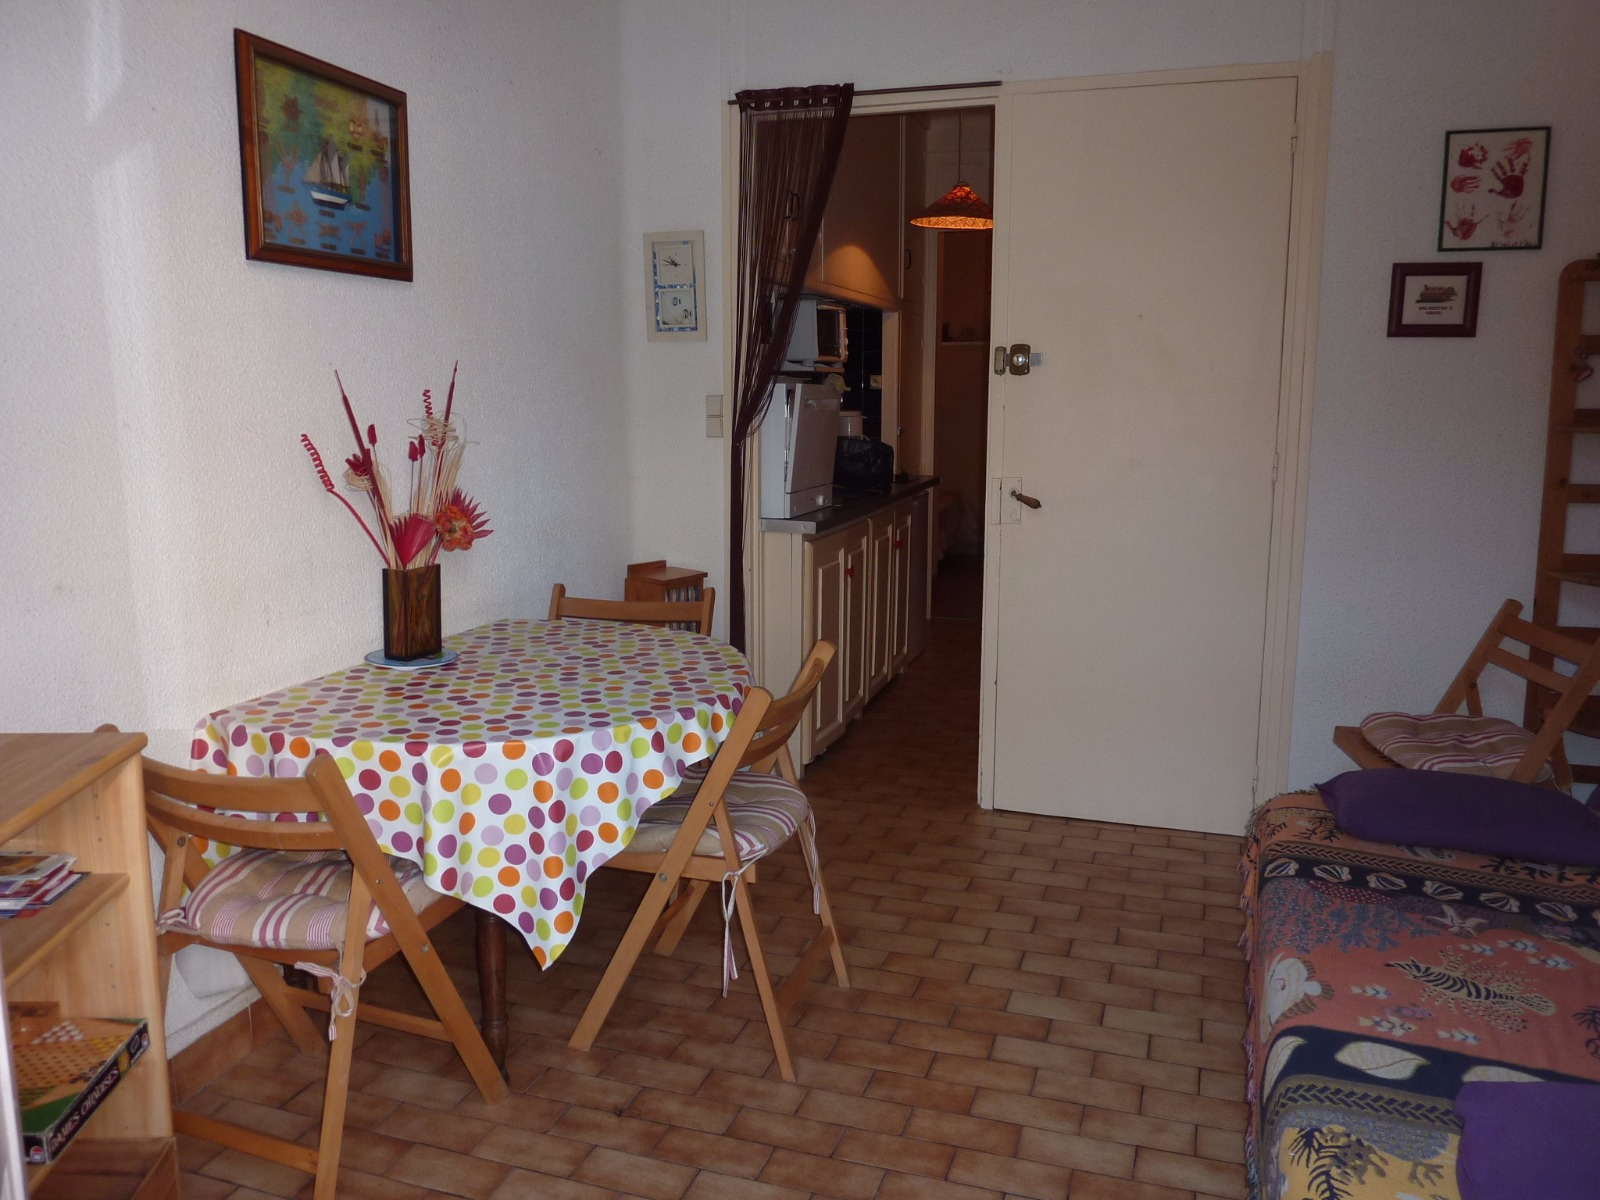 Vente collioure appartement 3 pi ces for Acheter maison collioure